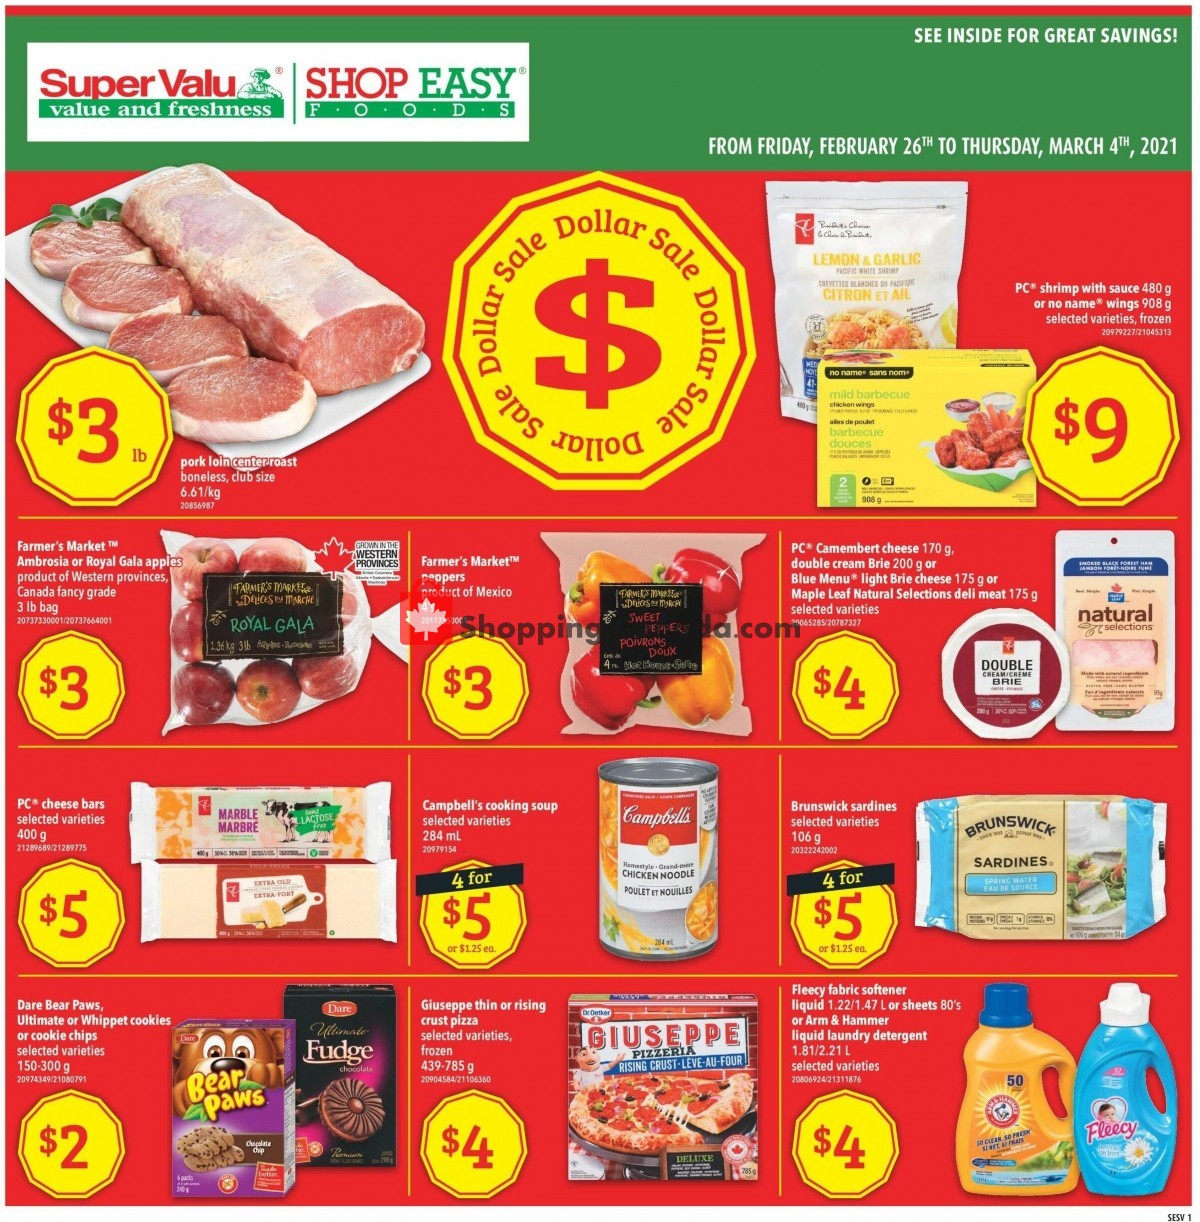 Flyer Shop Easy Foods & SuperValu Canada - from Friday February 26, 2021 to Thursday March 4, 2021